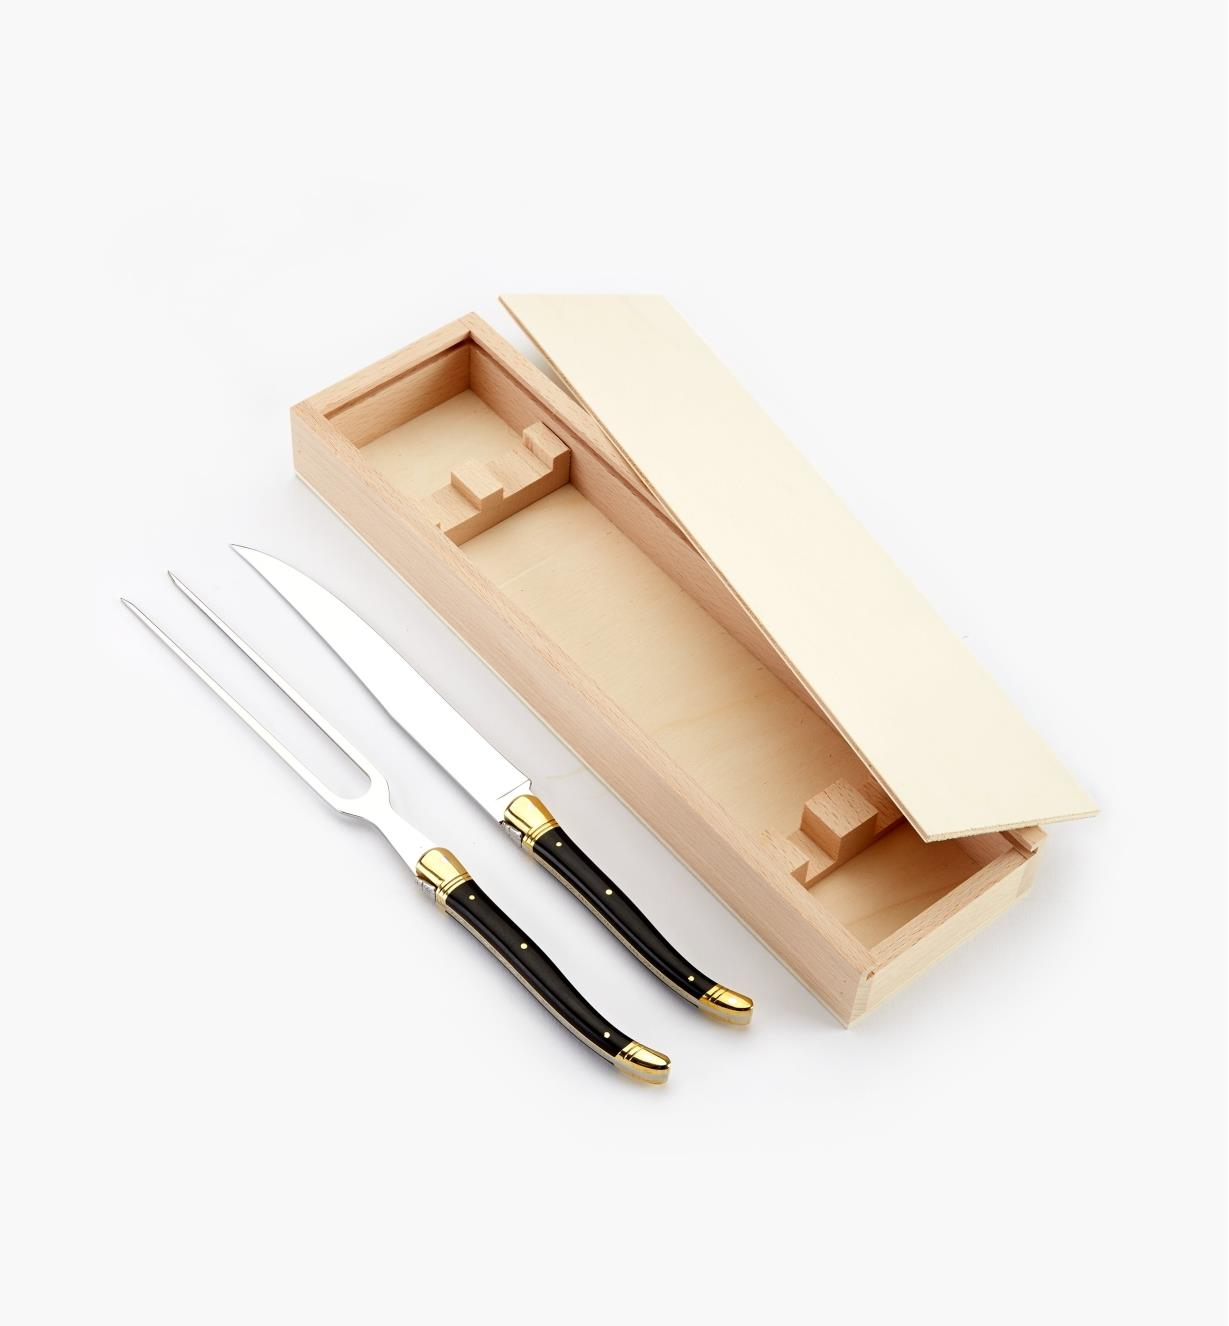 33K0618 - Laguiole Carving Set